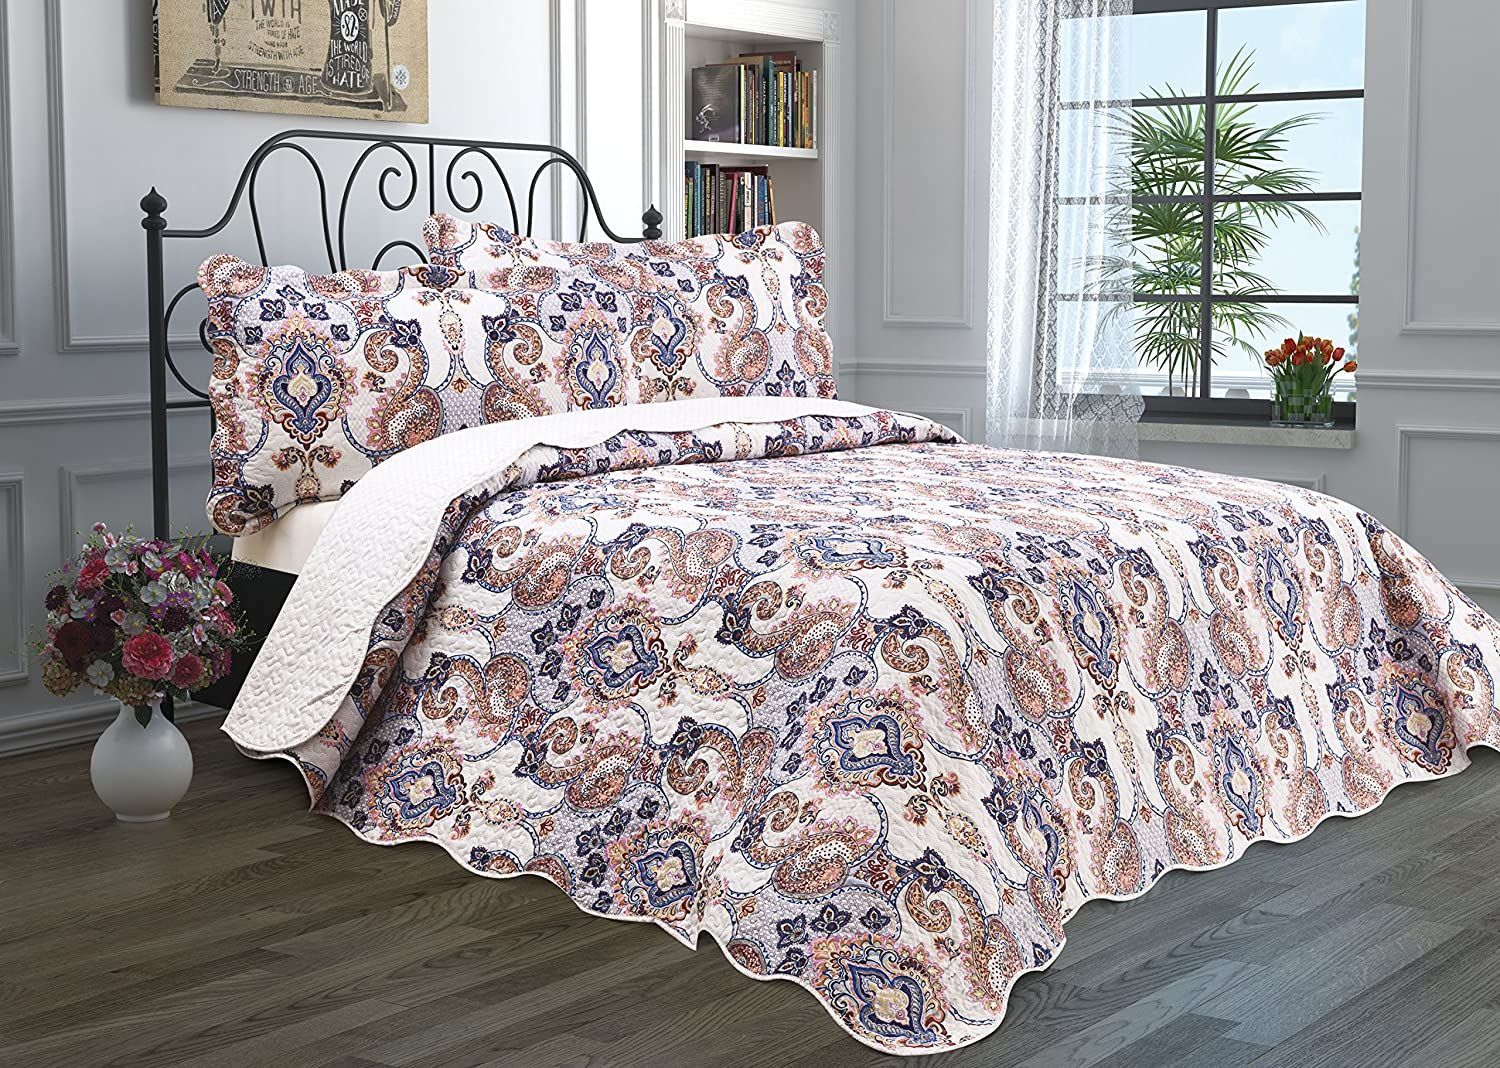 amazon com 3 piece quilt set with shams reversible bedspread